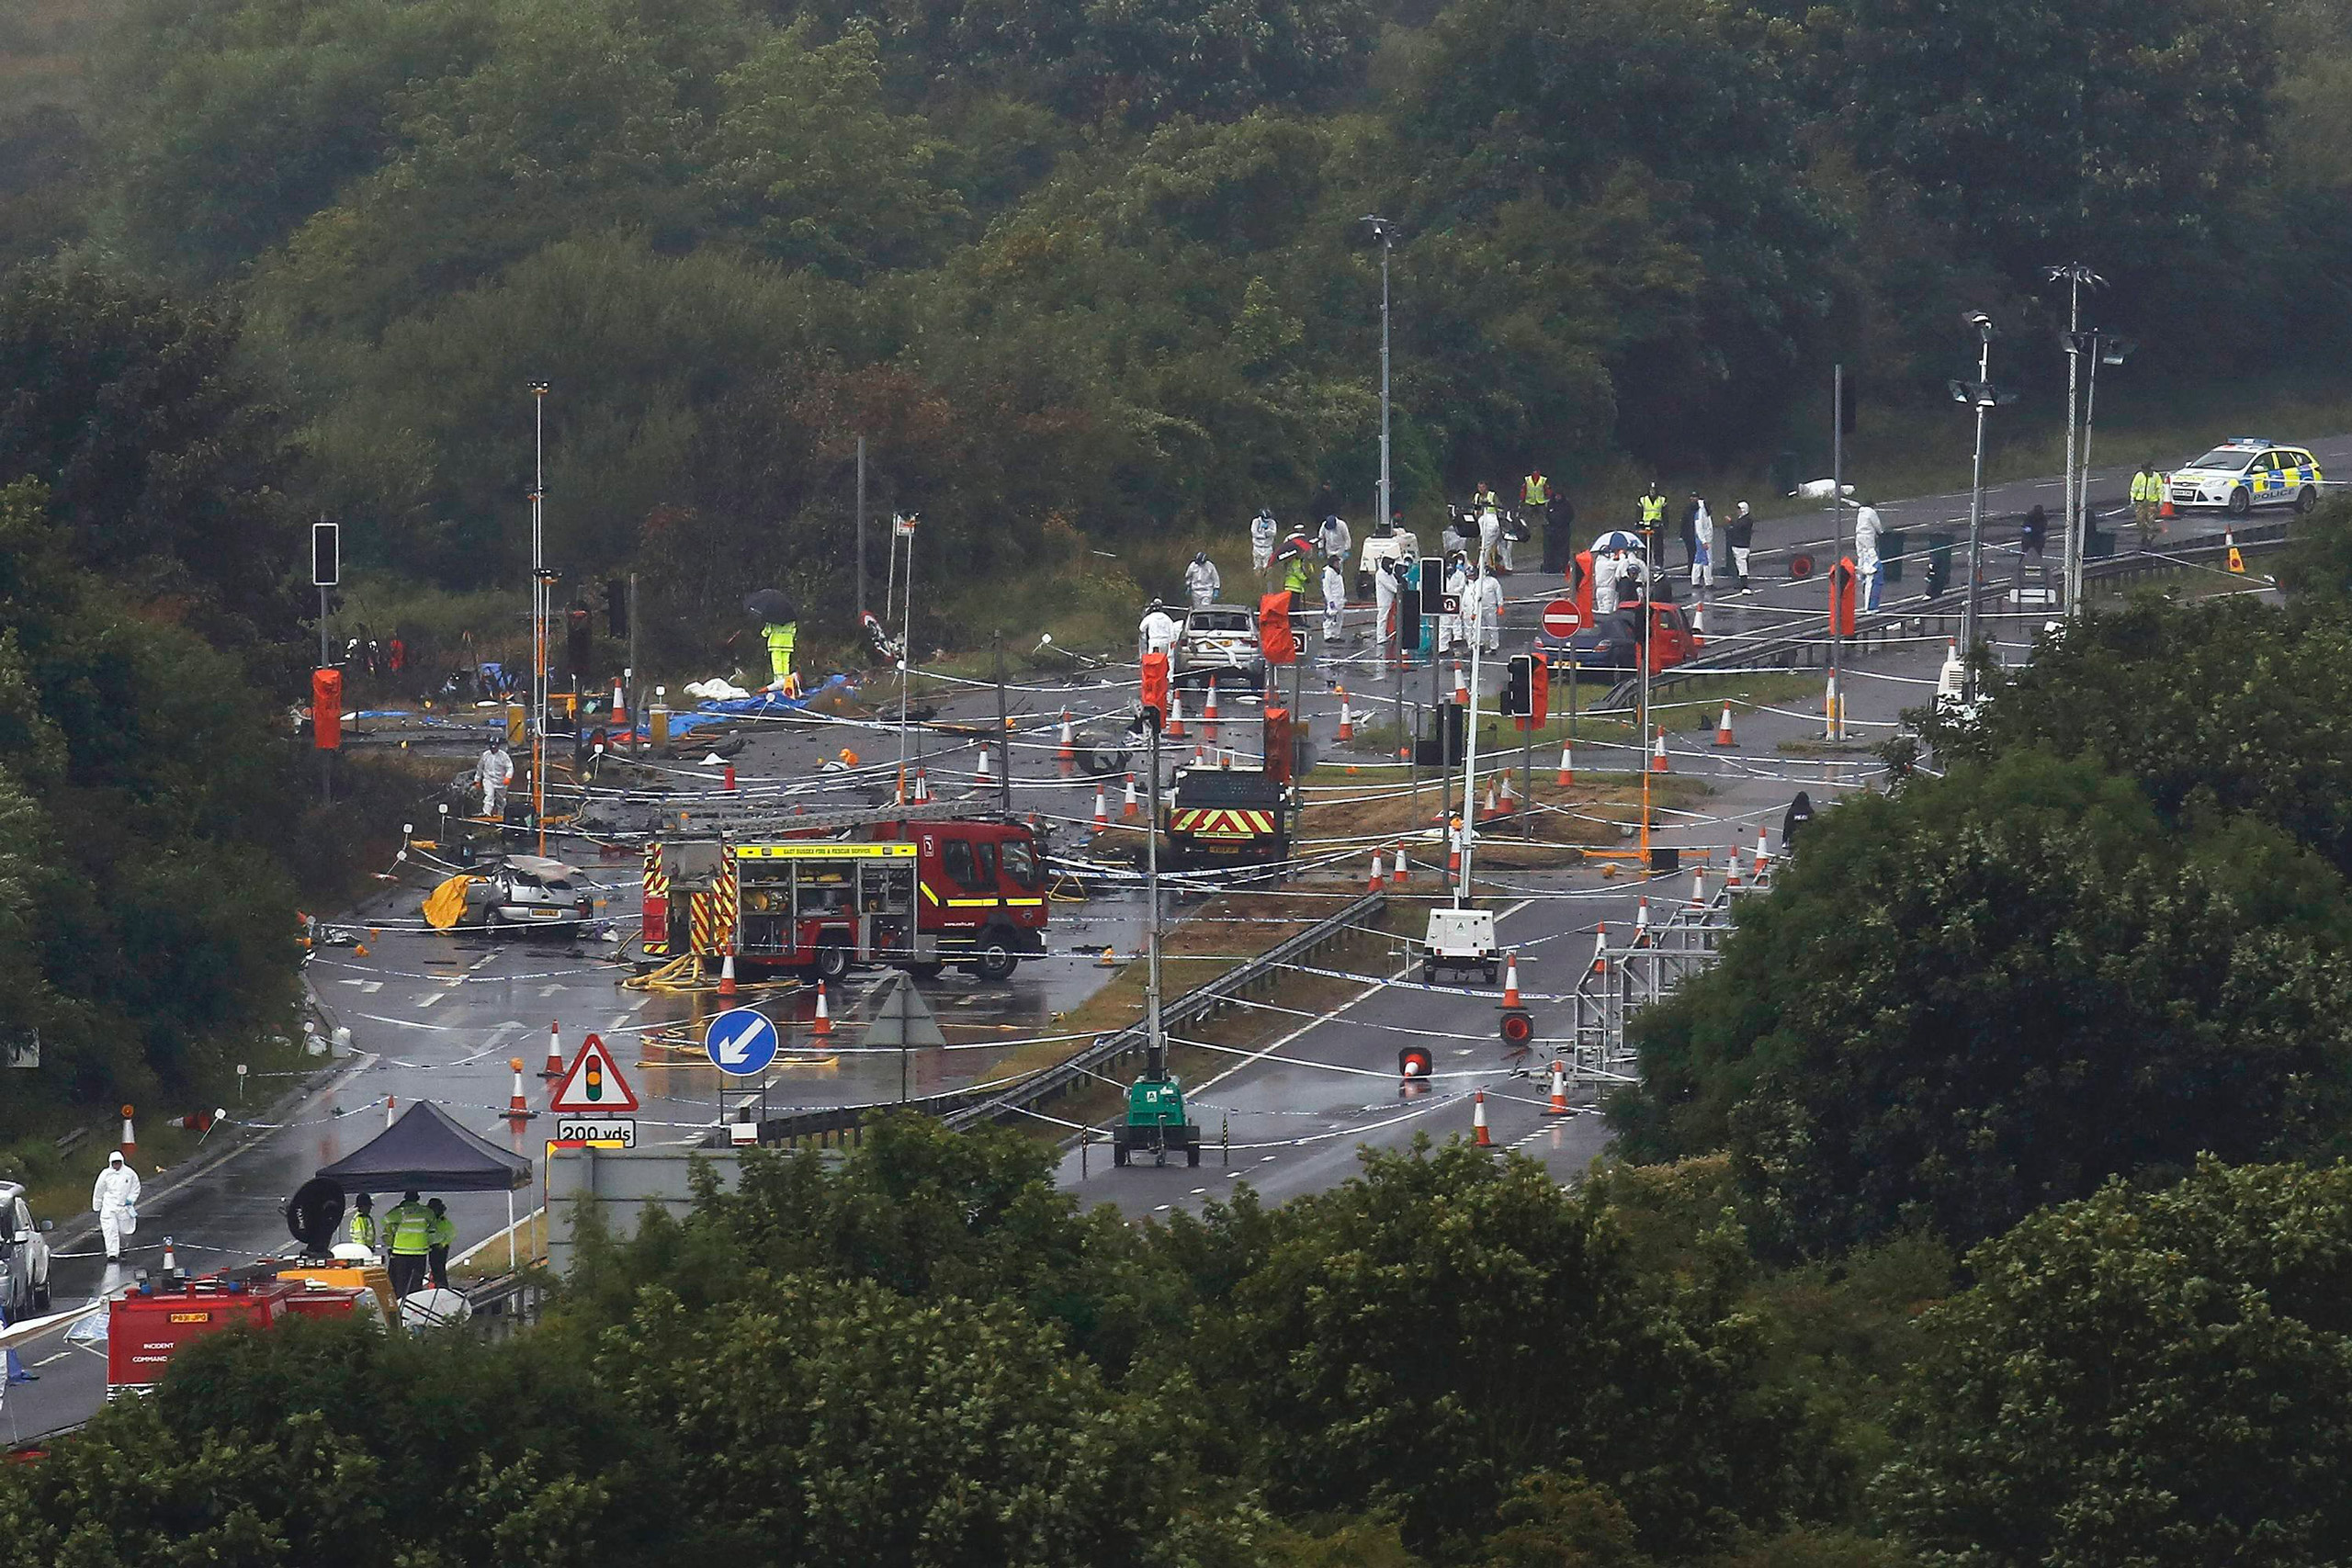 Emergency services and crash investigation officers continue to work at the site where a Hawker Hunter fighter jet crashed onto the A27 road at Shoreham near Brighton, U.K., Aug. 24, 2015.